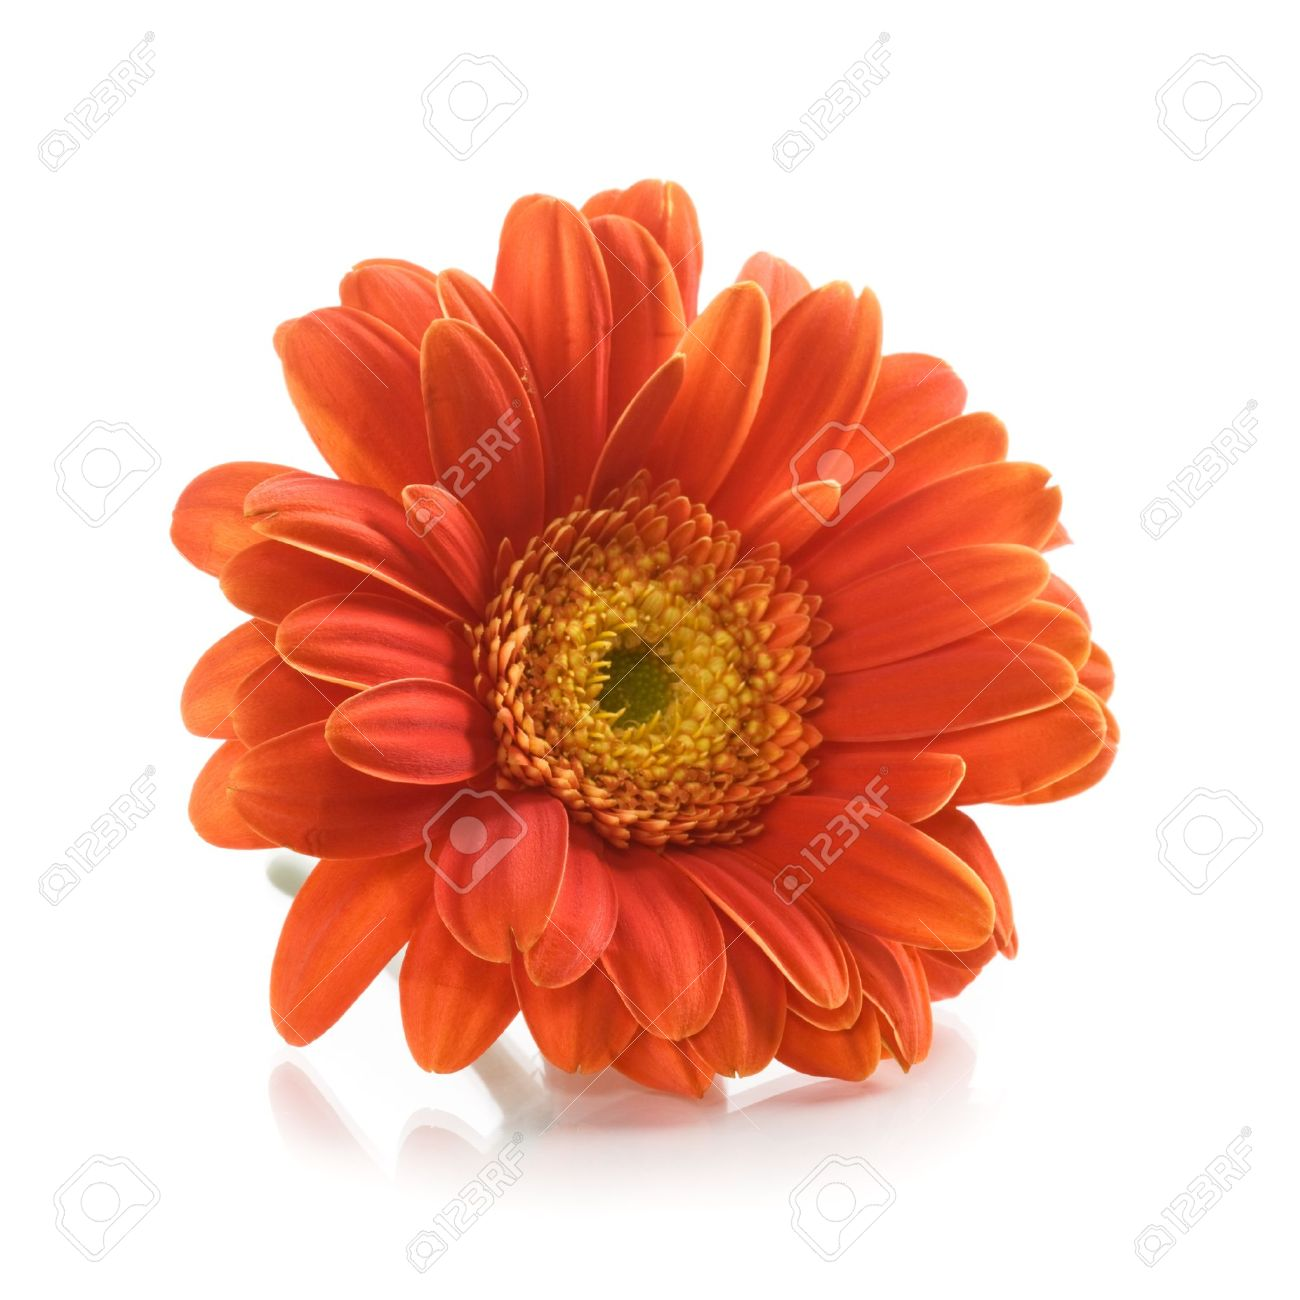 flower head stock photos u0026 pictures royalty free flower head